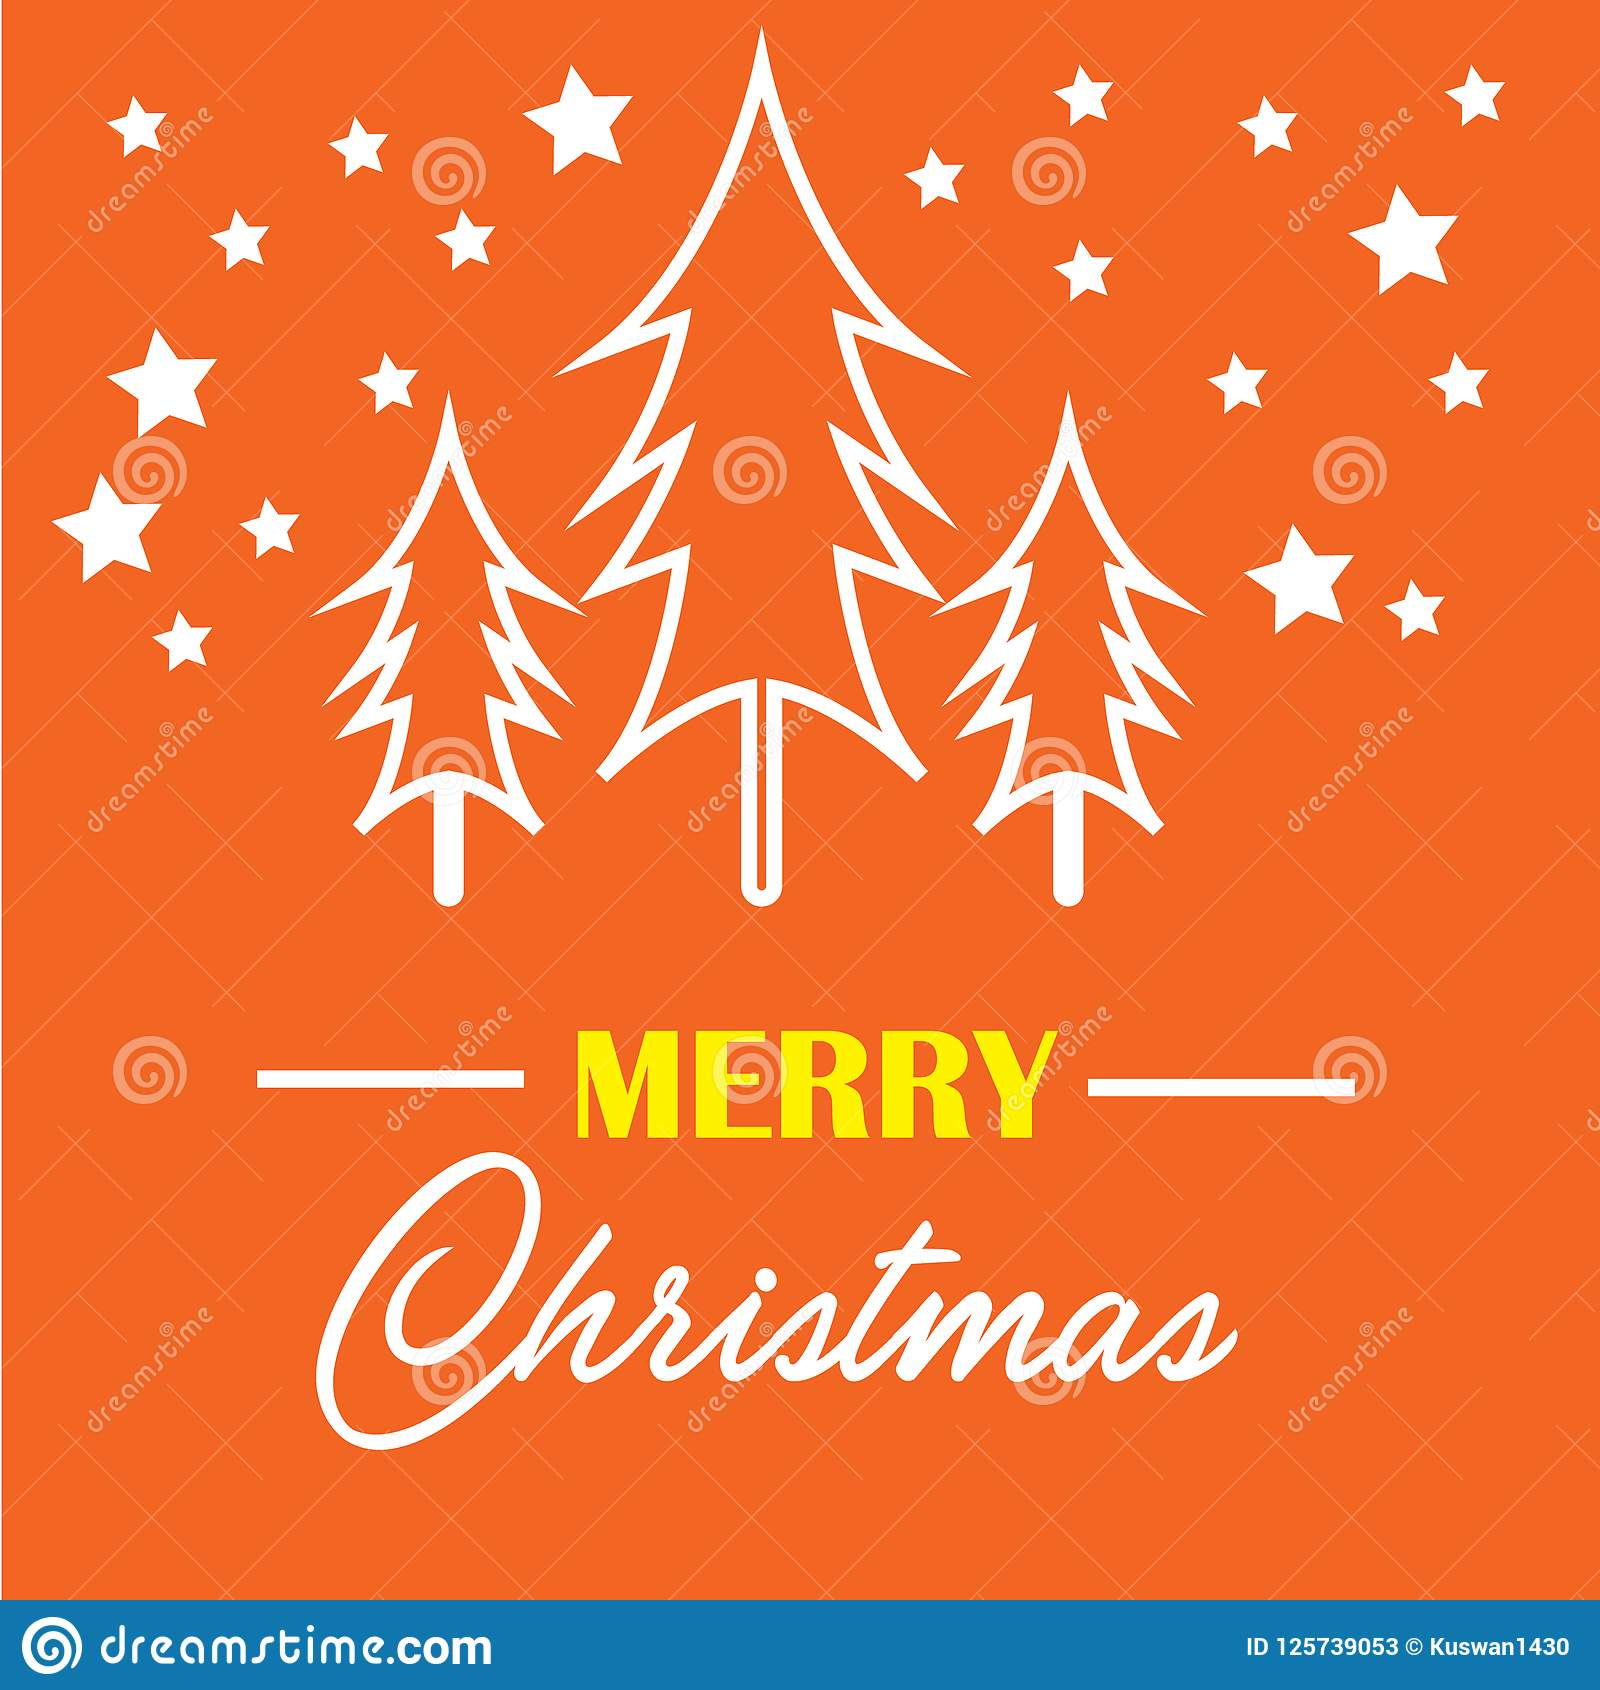 Religious Merry Christmas Images.Merry Christmas Template Design For Religion Editable Eps